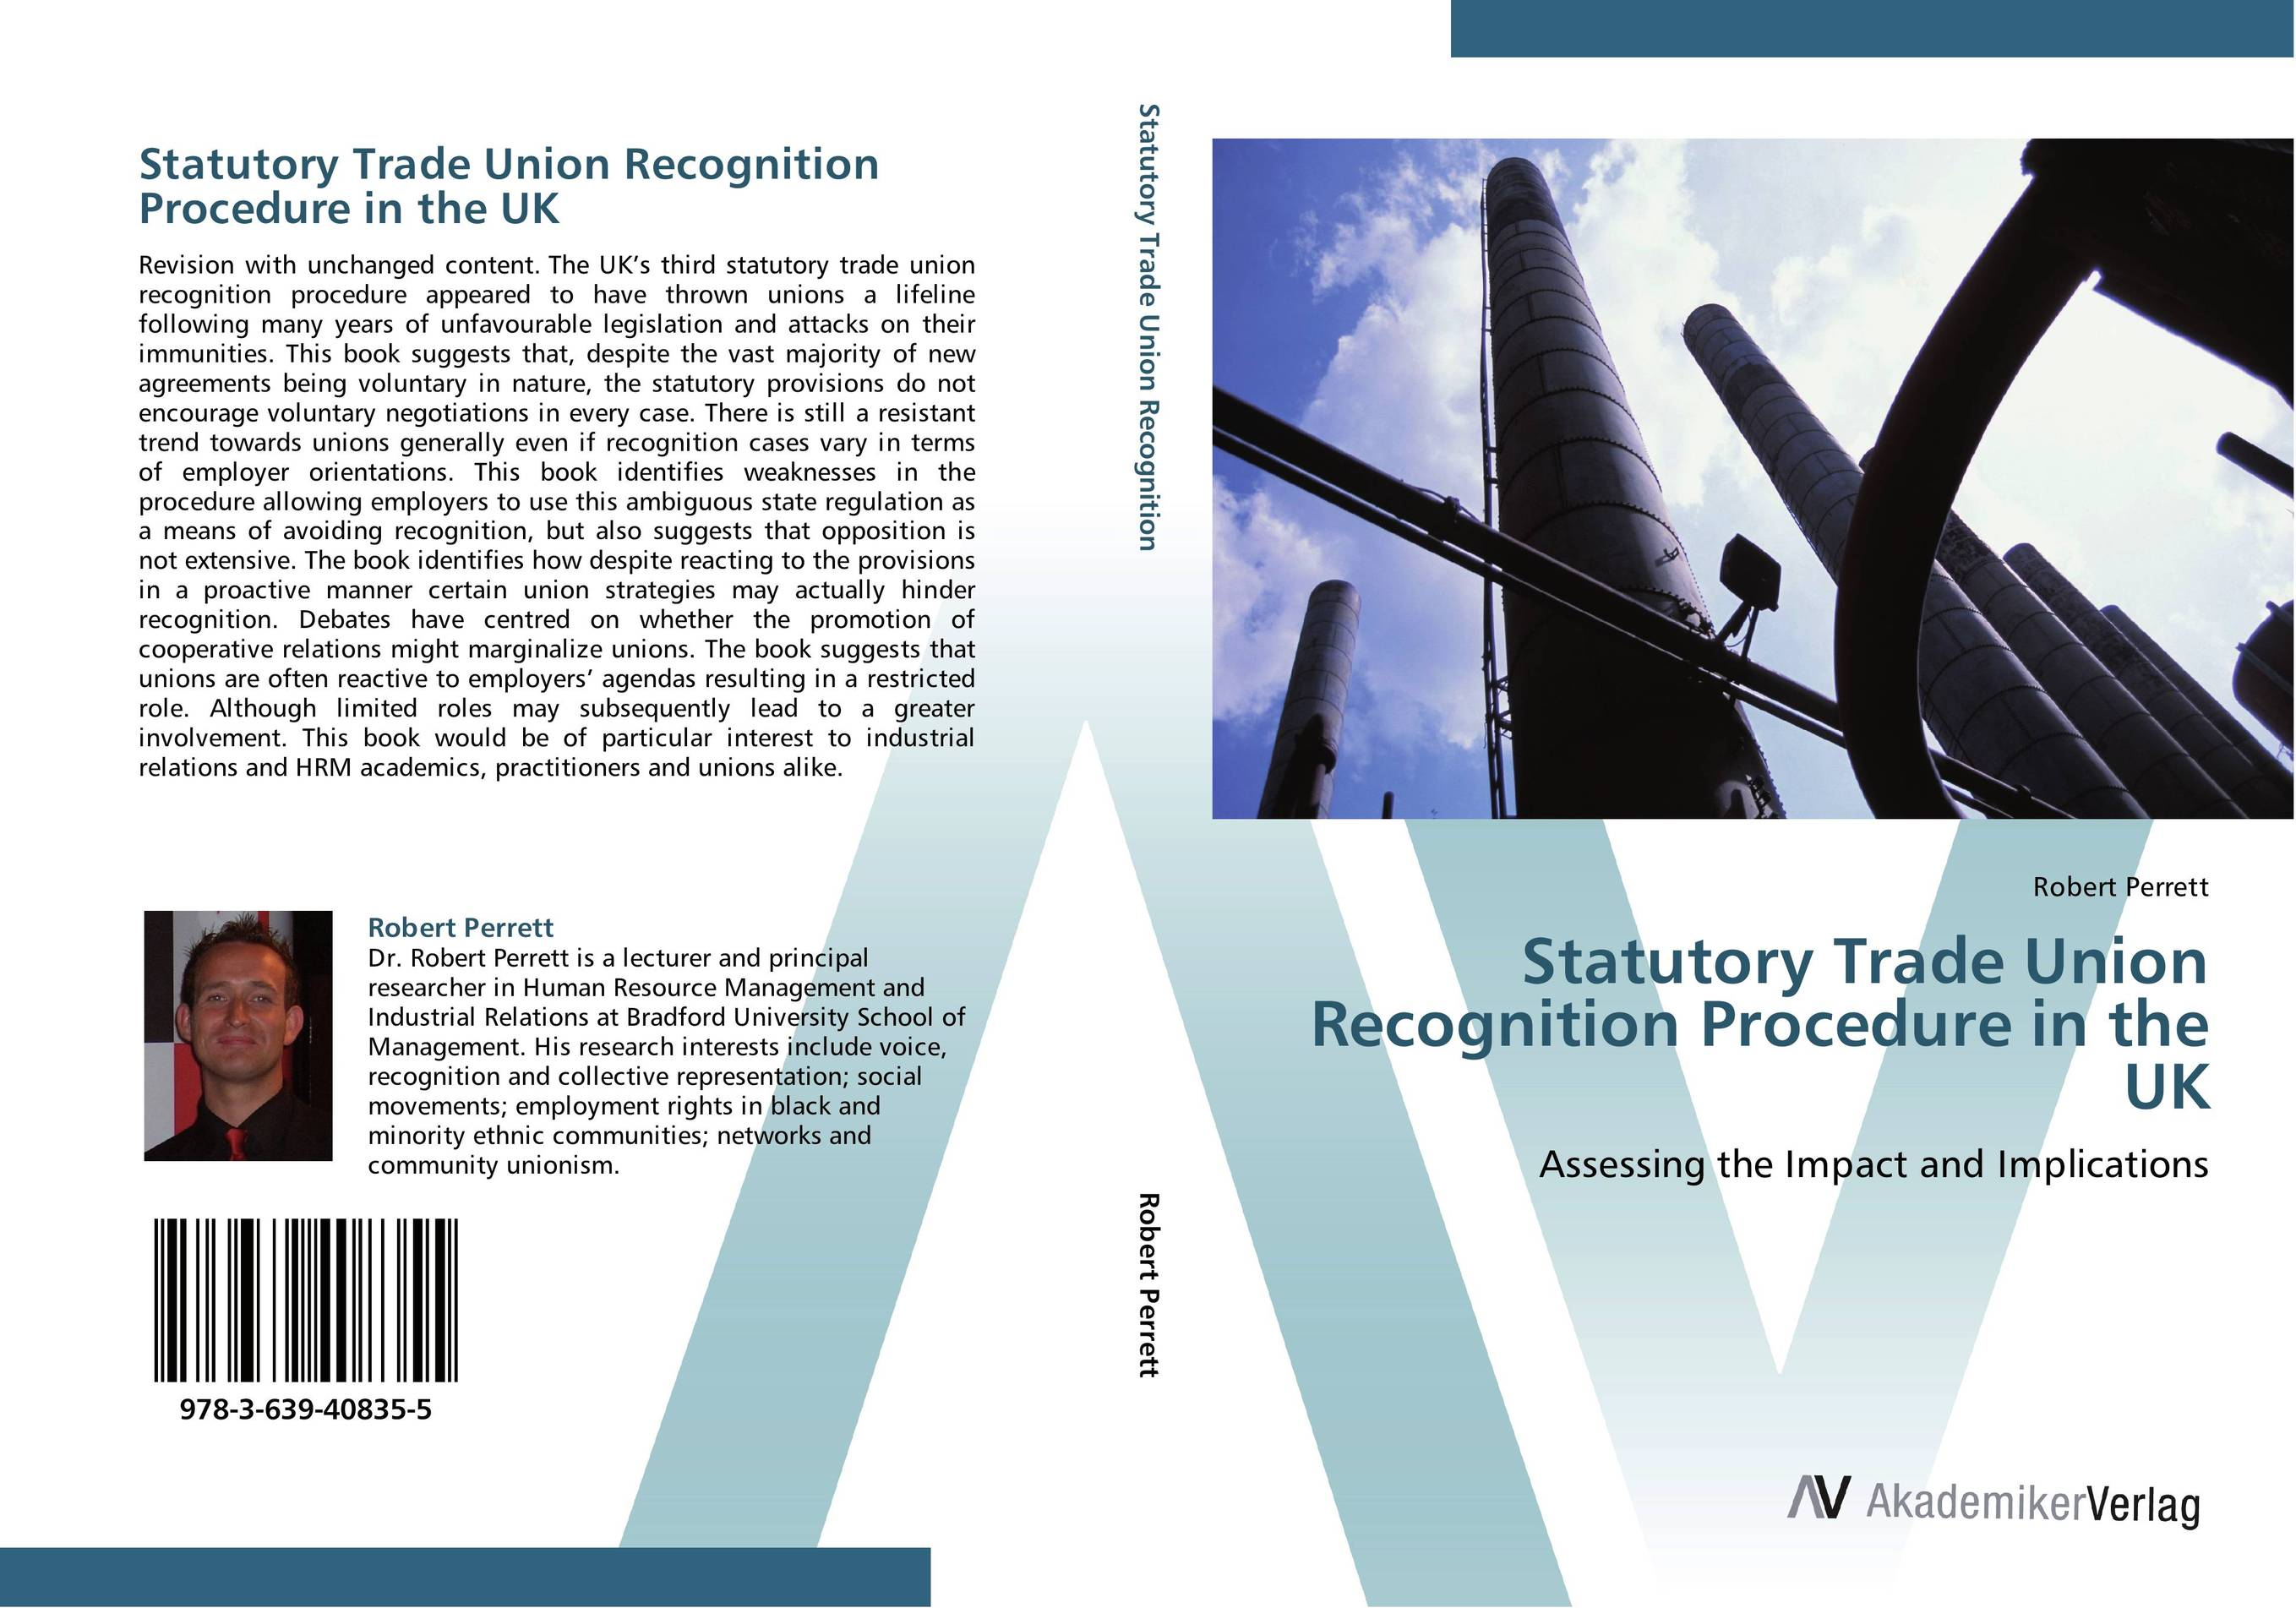 Statutory Trade Union Recognition Procedure in the UK